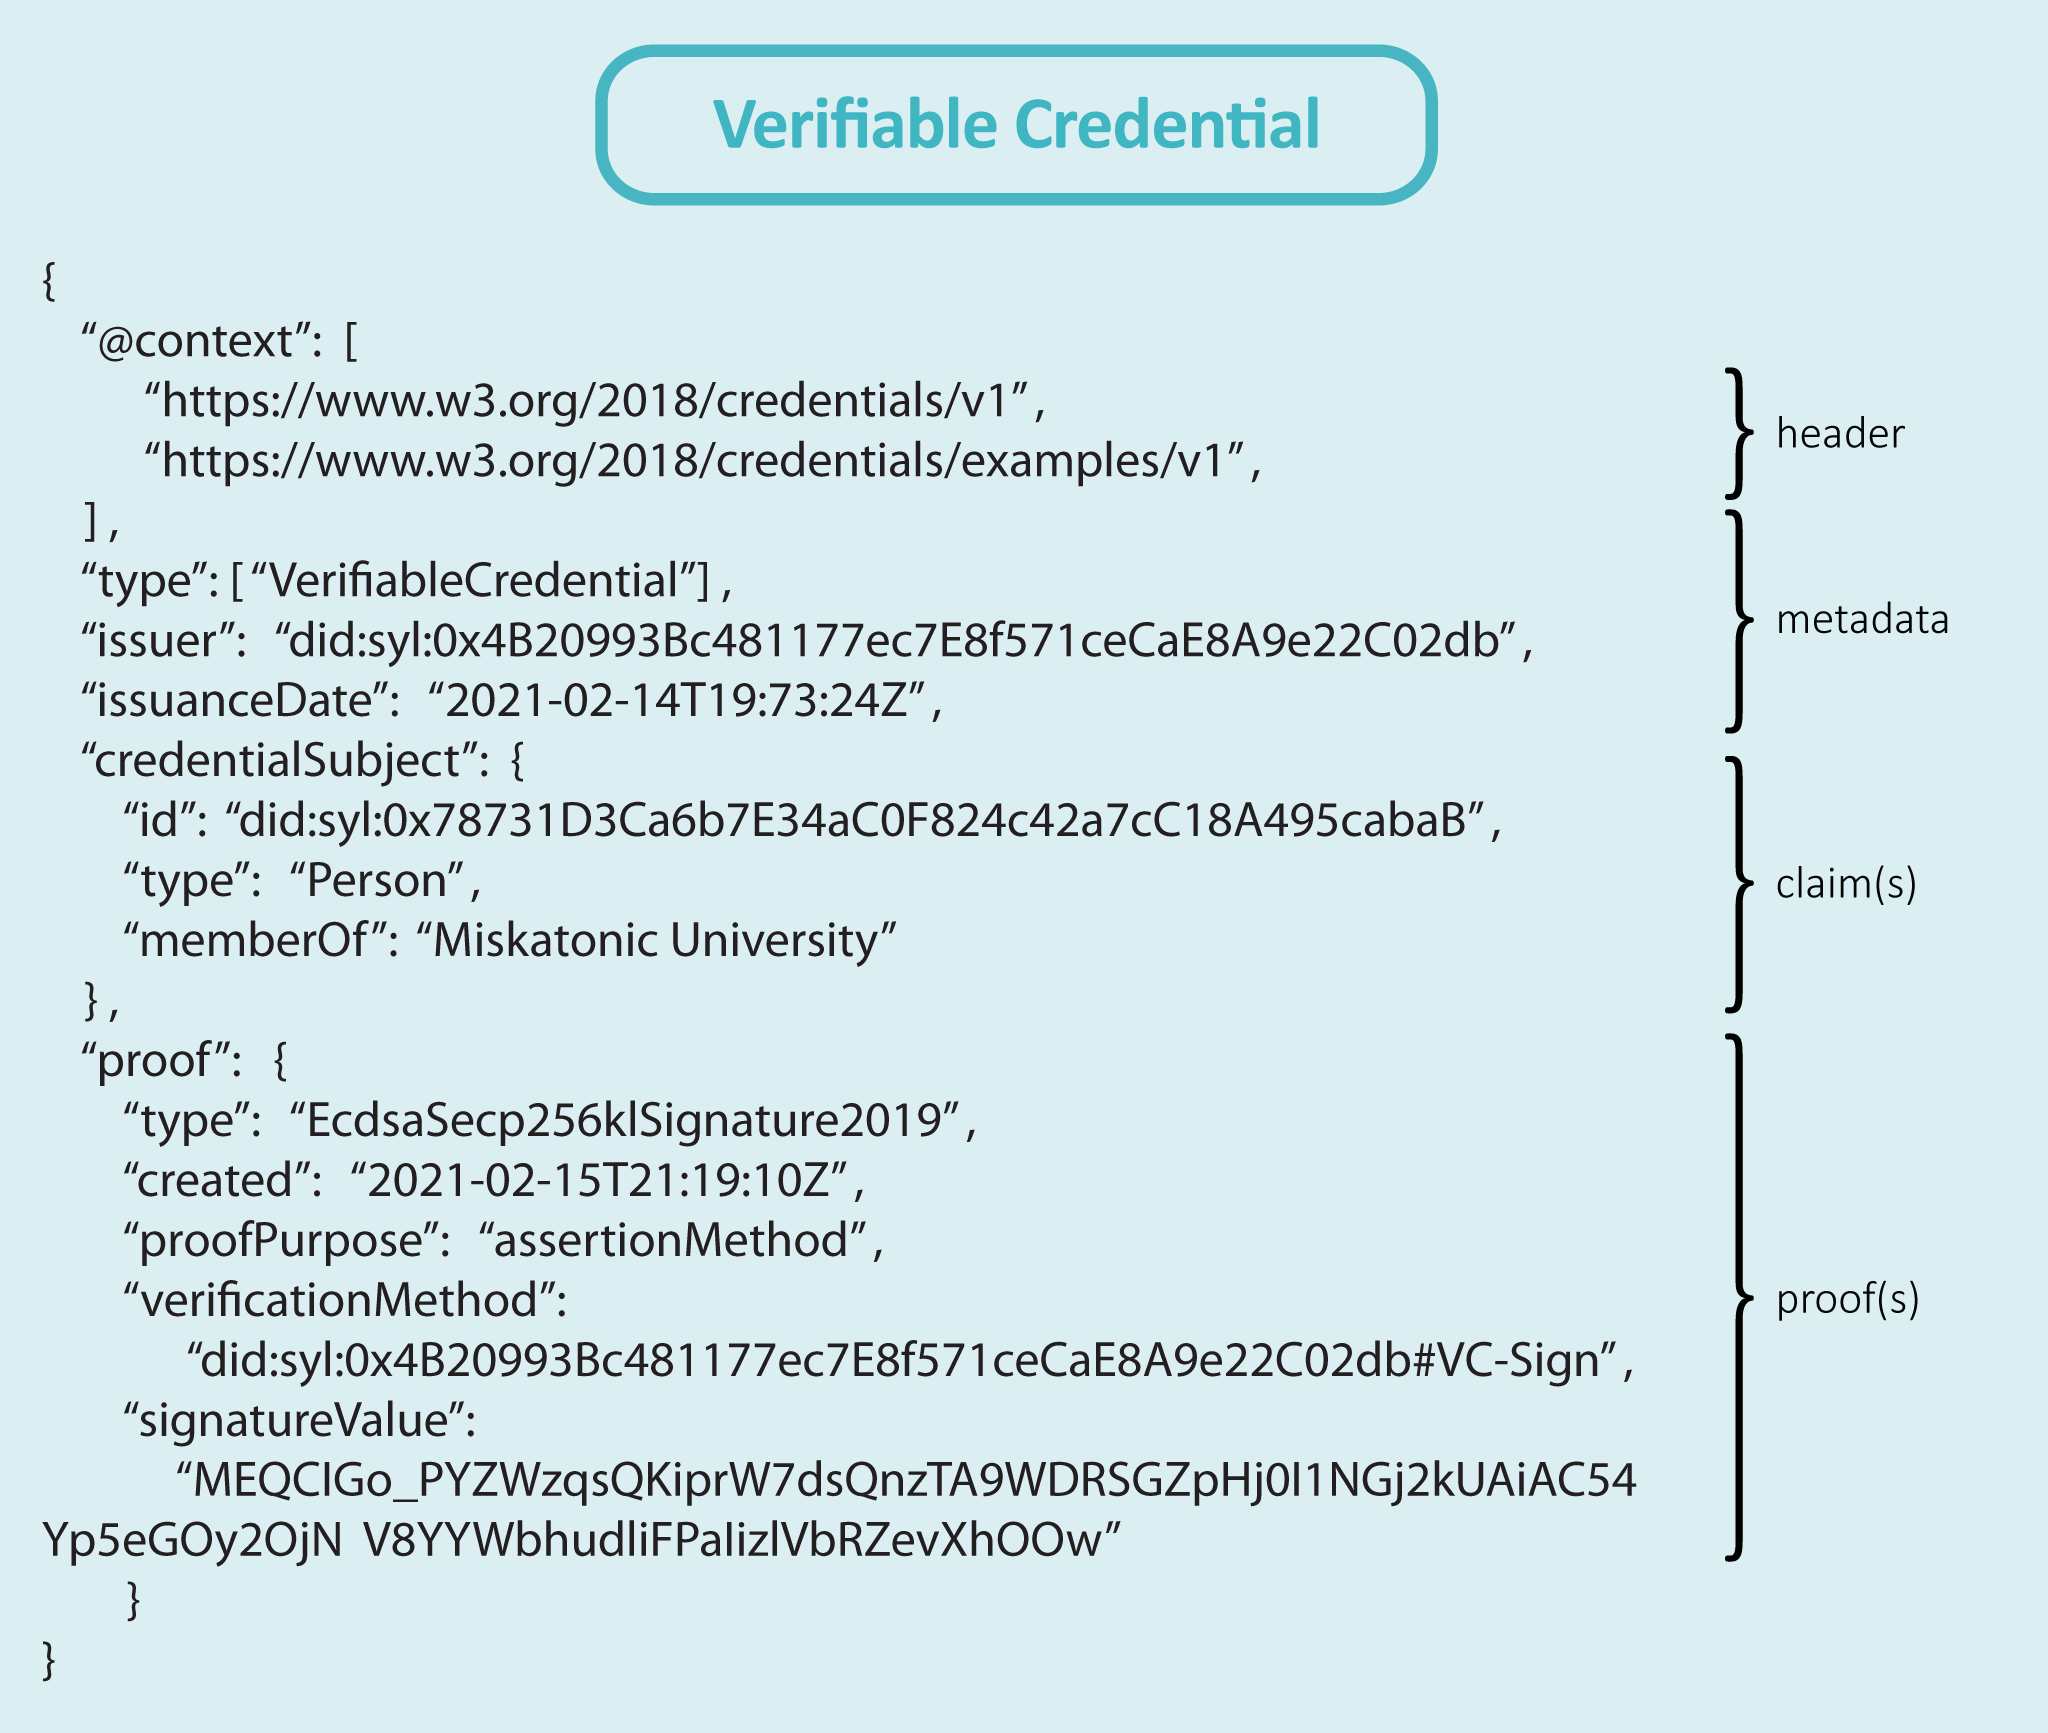 Figure 3-6 - Example of a Verifiable Credential given by a university to one of its members